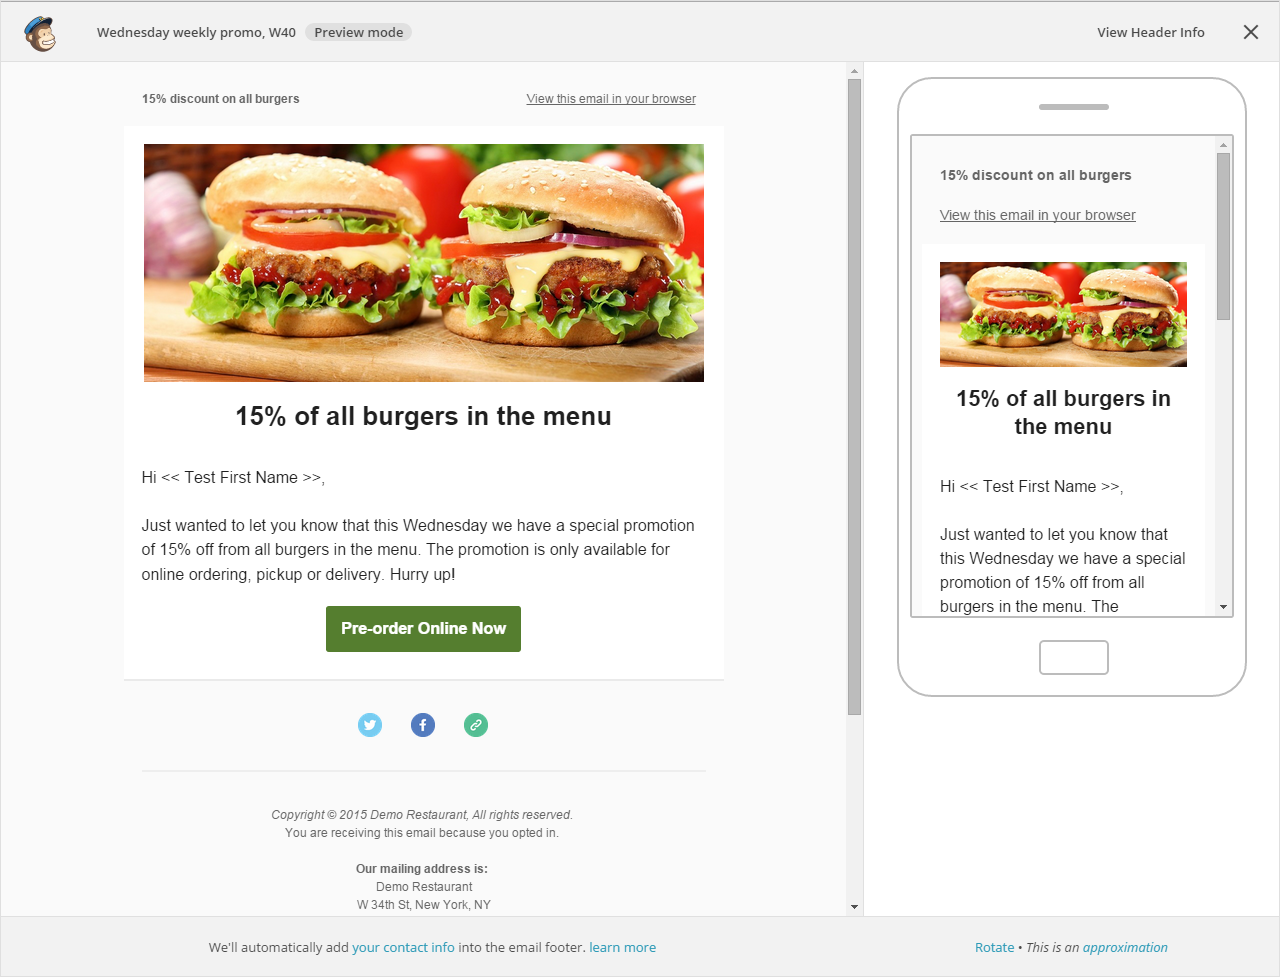 restaurant email marketing  edit email template in mailchimp (image)